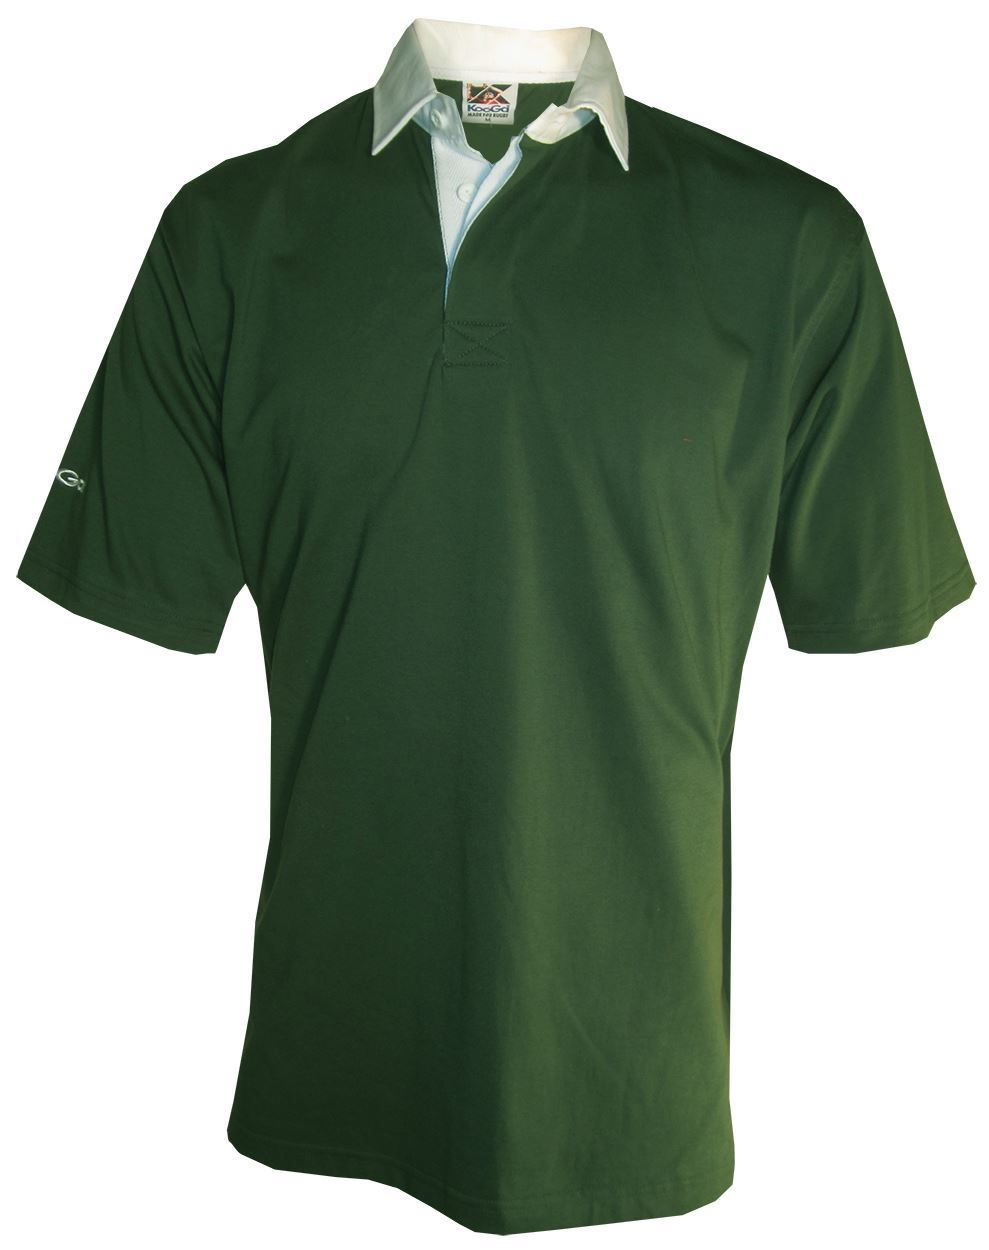 NEW-Kooga-Mens-Polo-Rugby-Shirt-Top-in-Red-or-Green-Size-S-amp-XL thumbnail 3